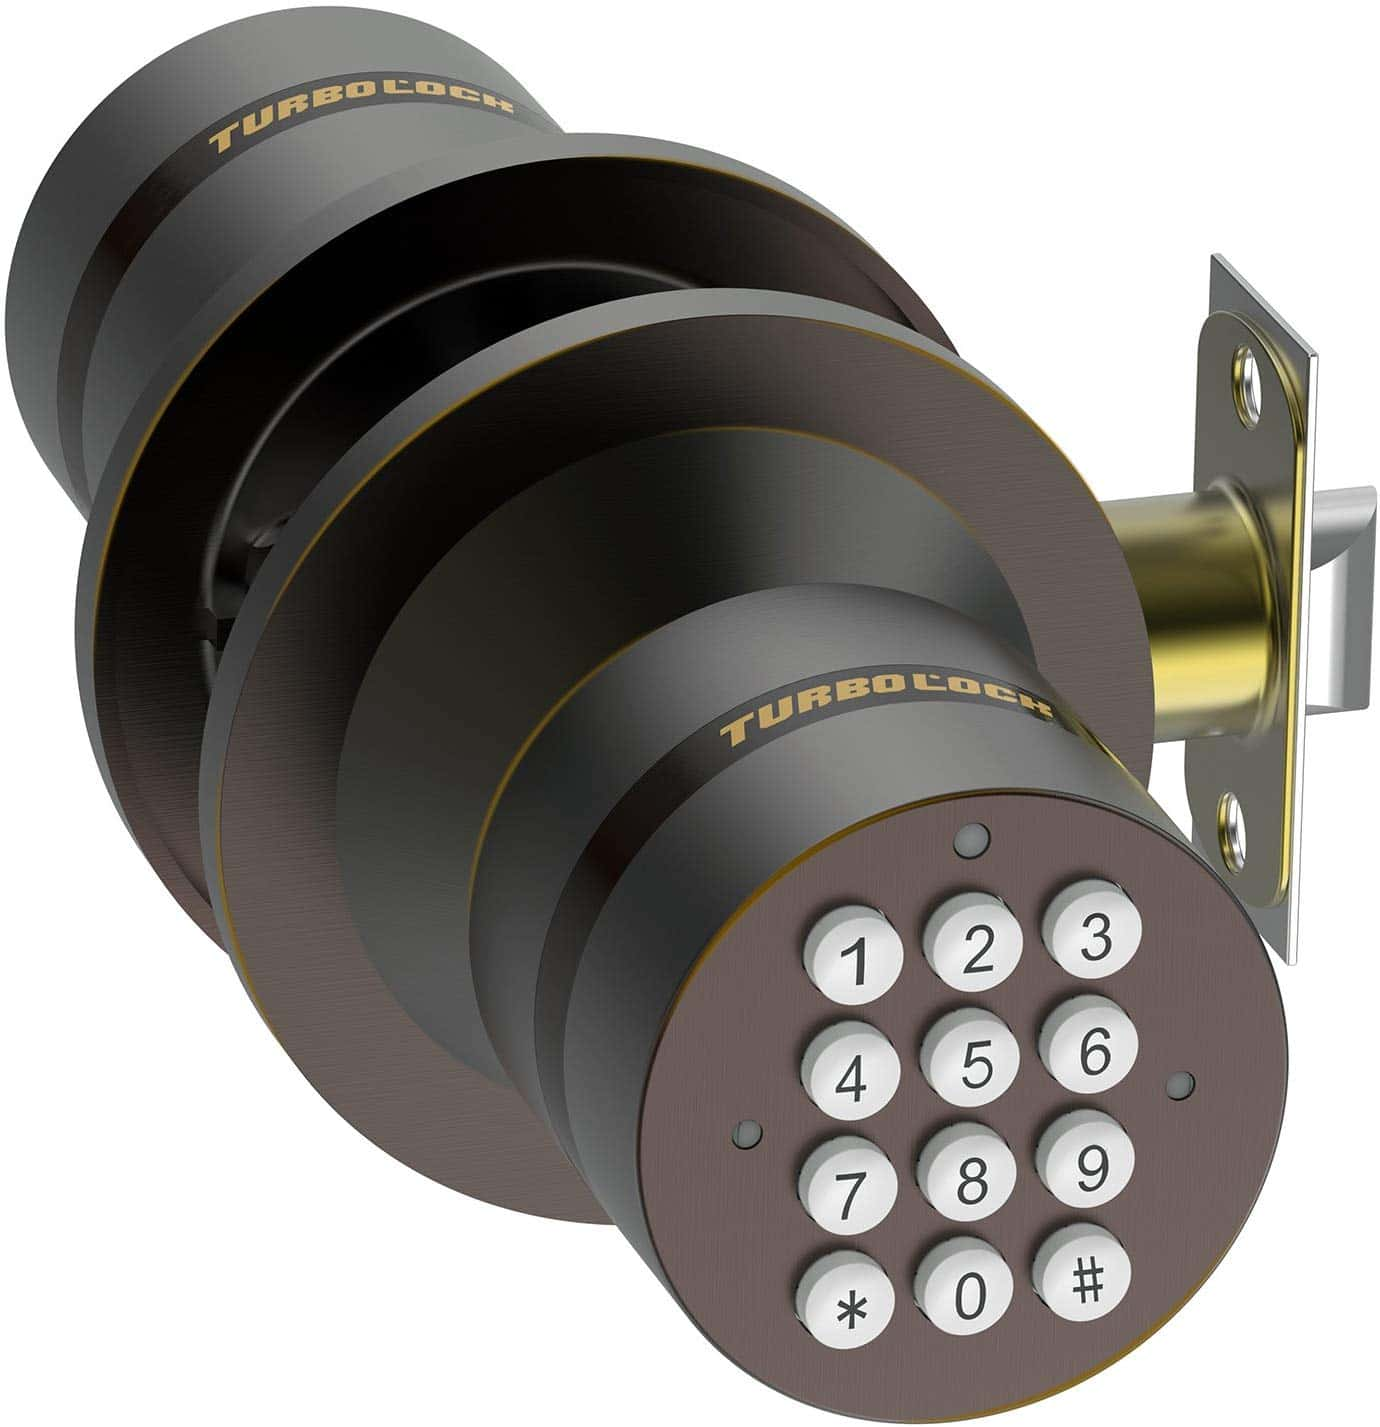 TurboLock Keyless Electronic Keypad Door Lock.